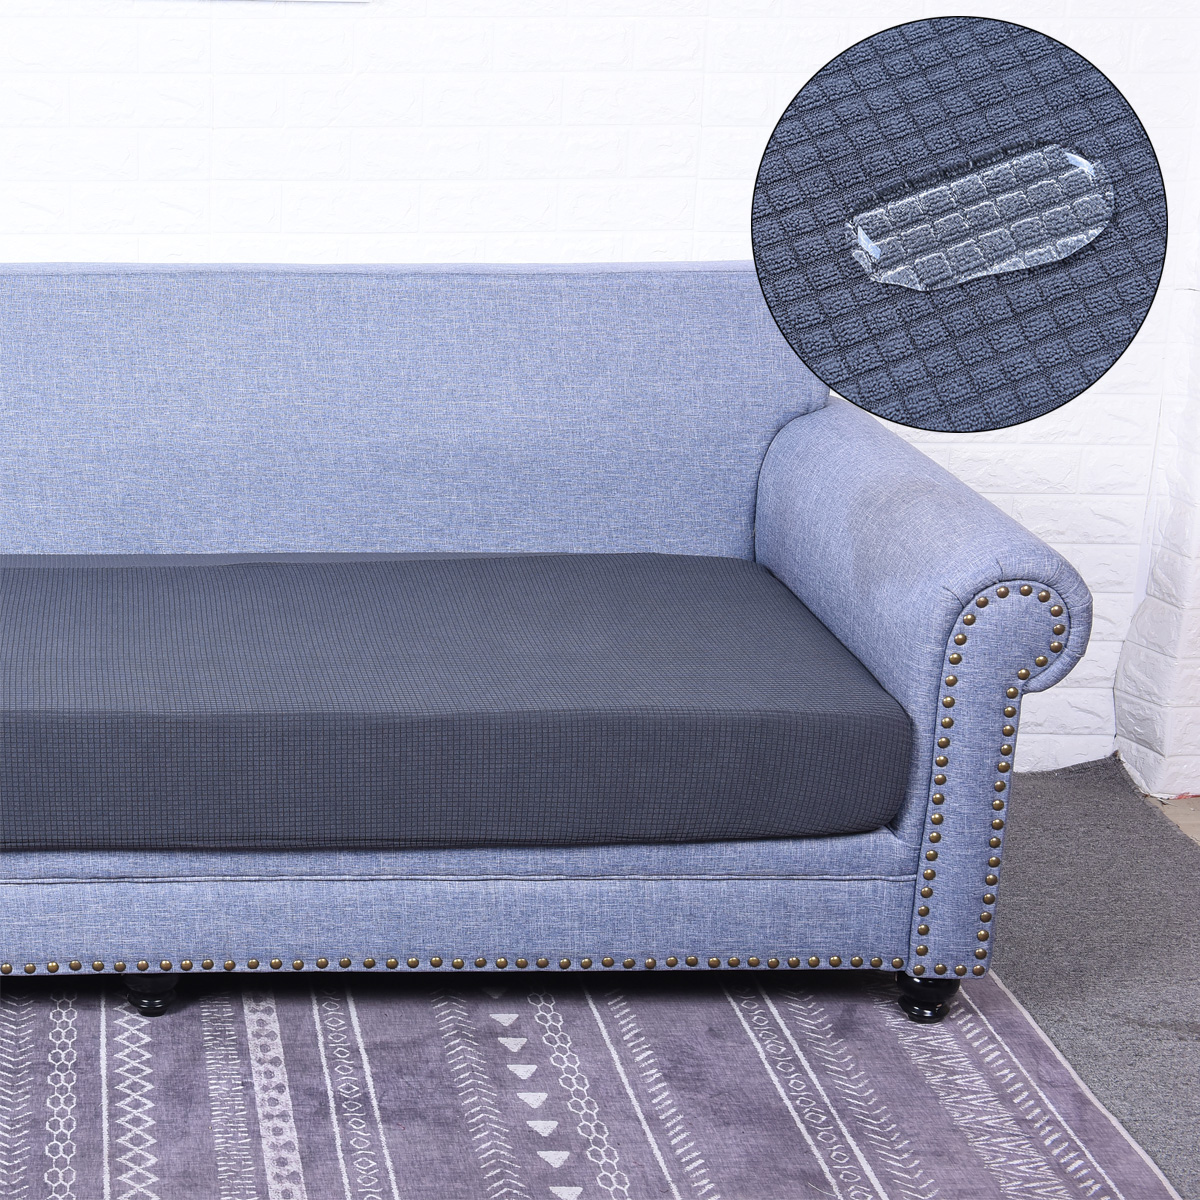 1-4 Seats Waterproof Stretchy Sofa Seat Cushion Cover